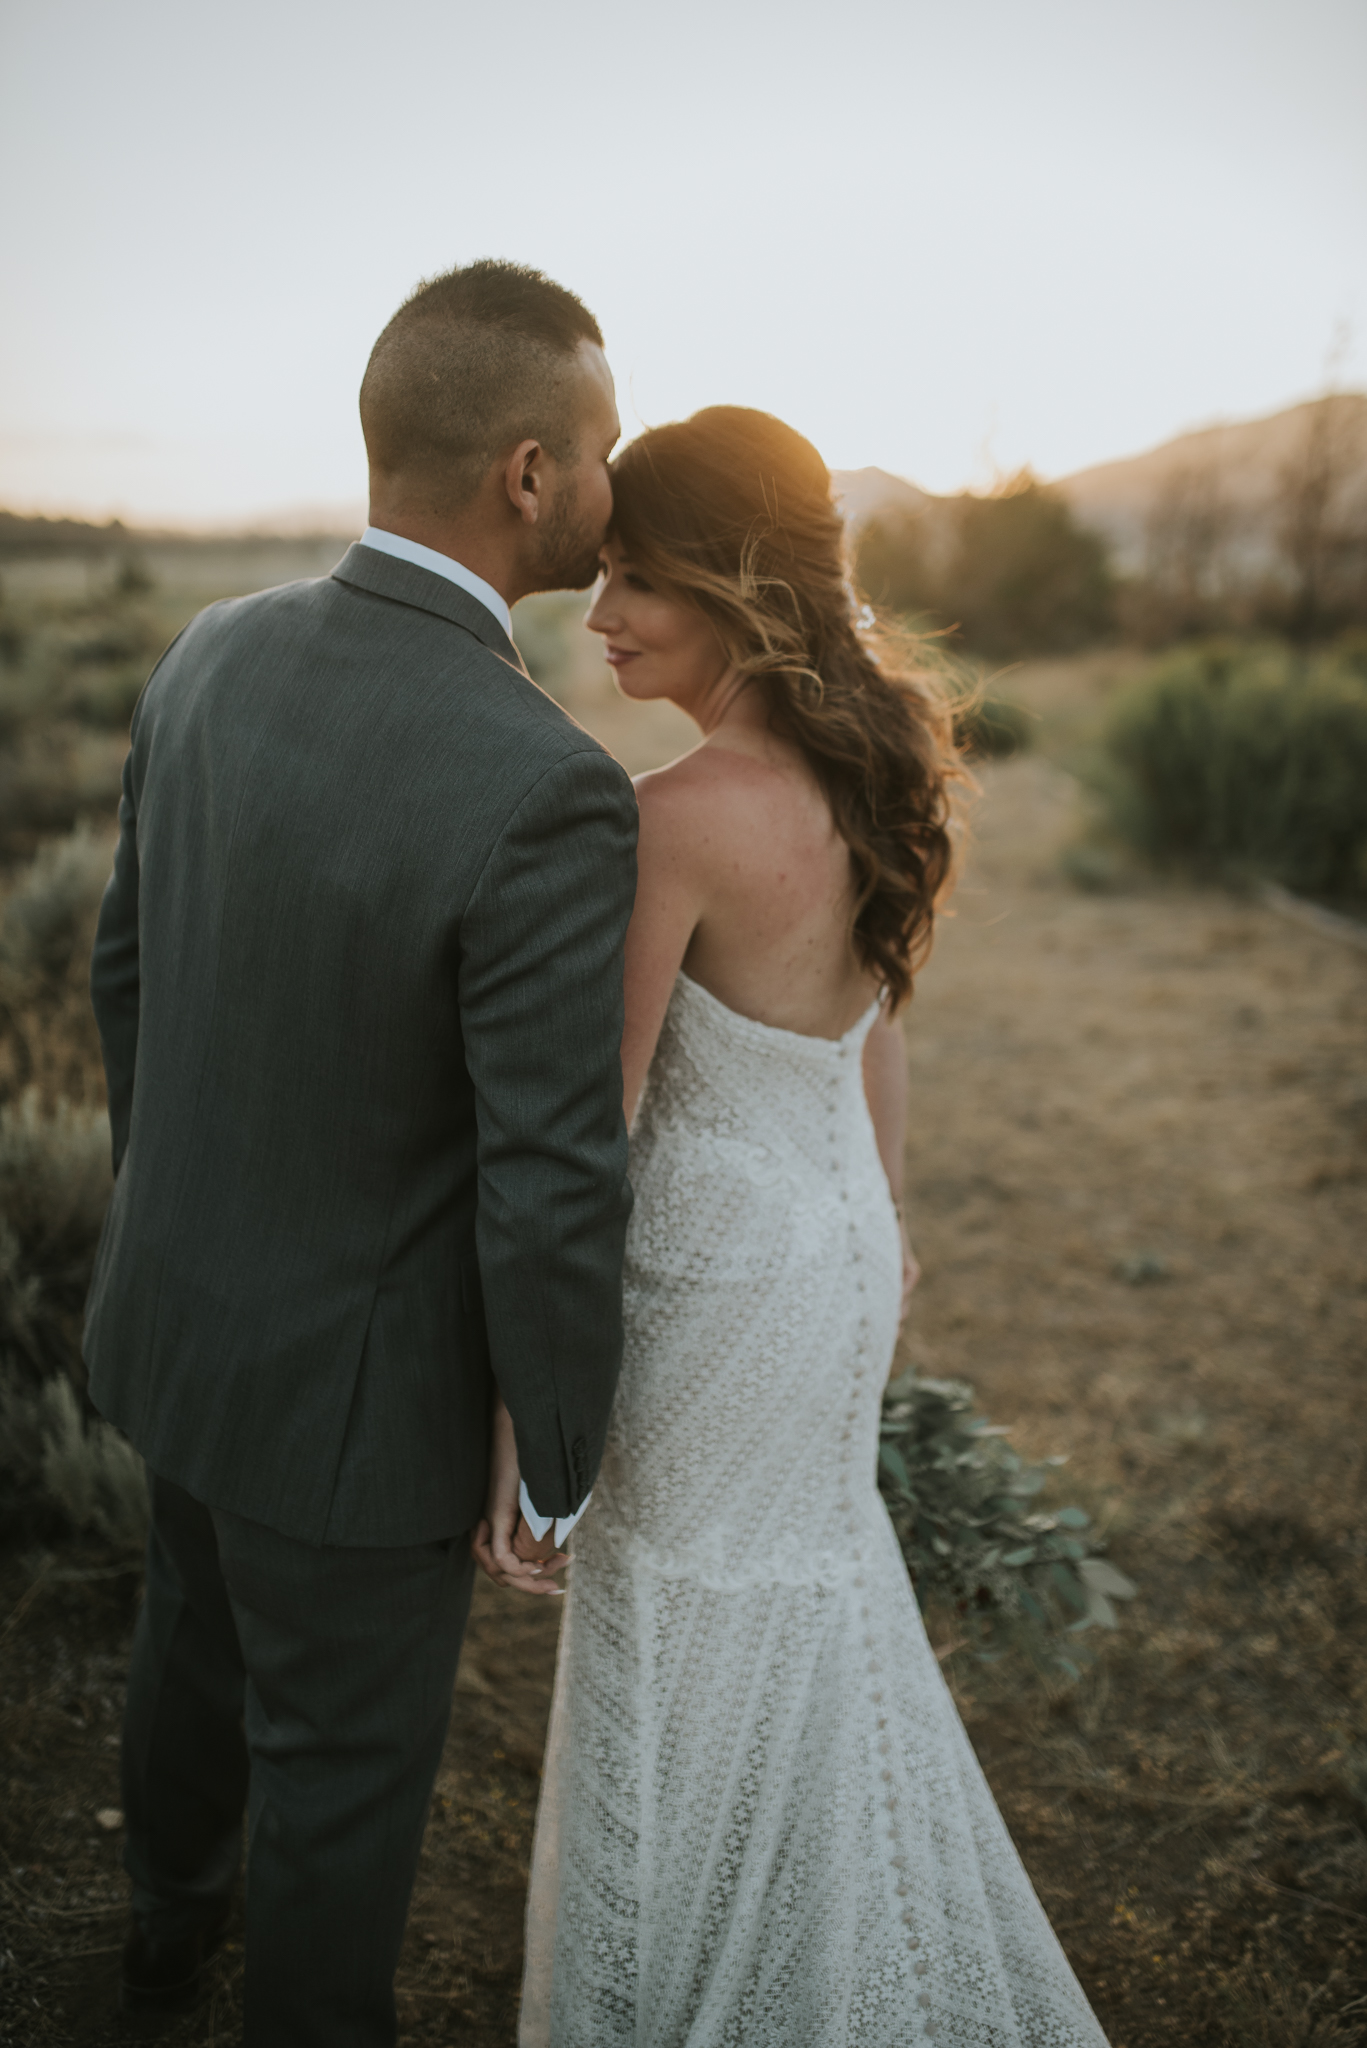 Click here to view the whole Big Bear wedding!